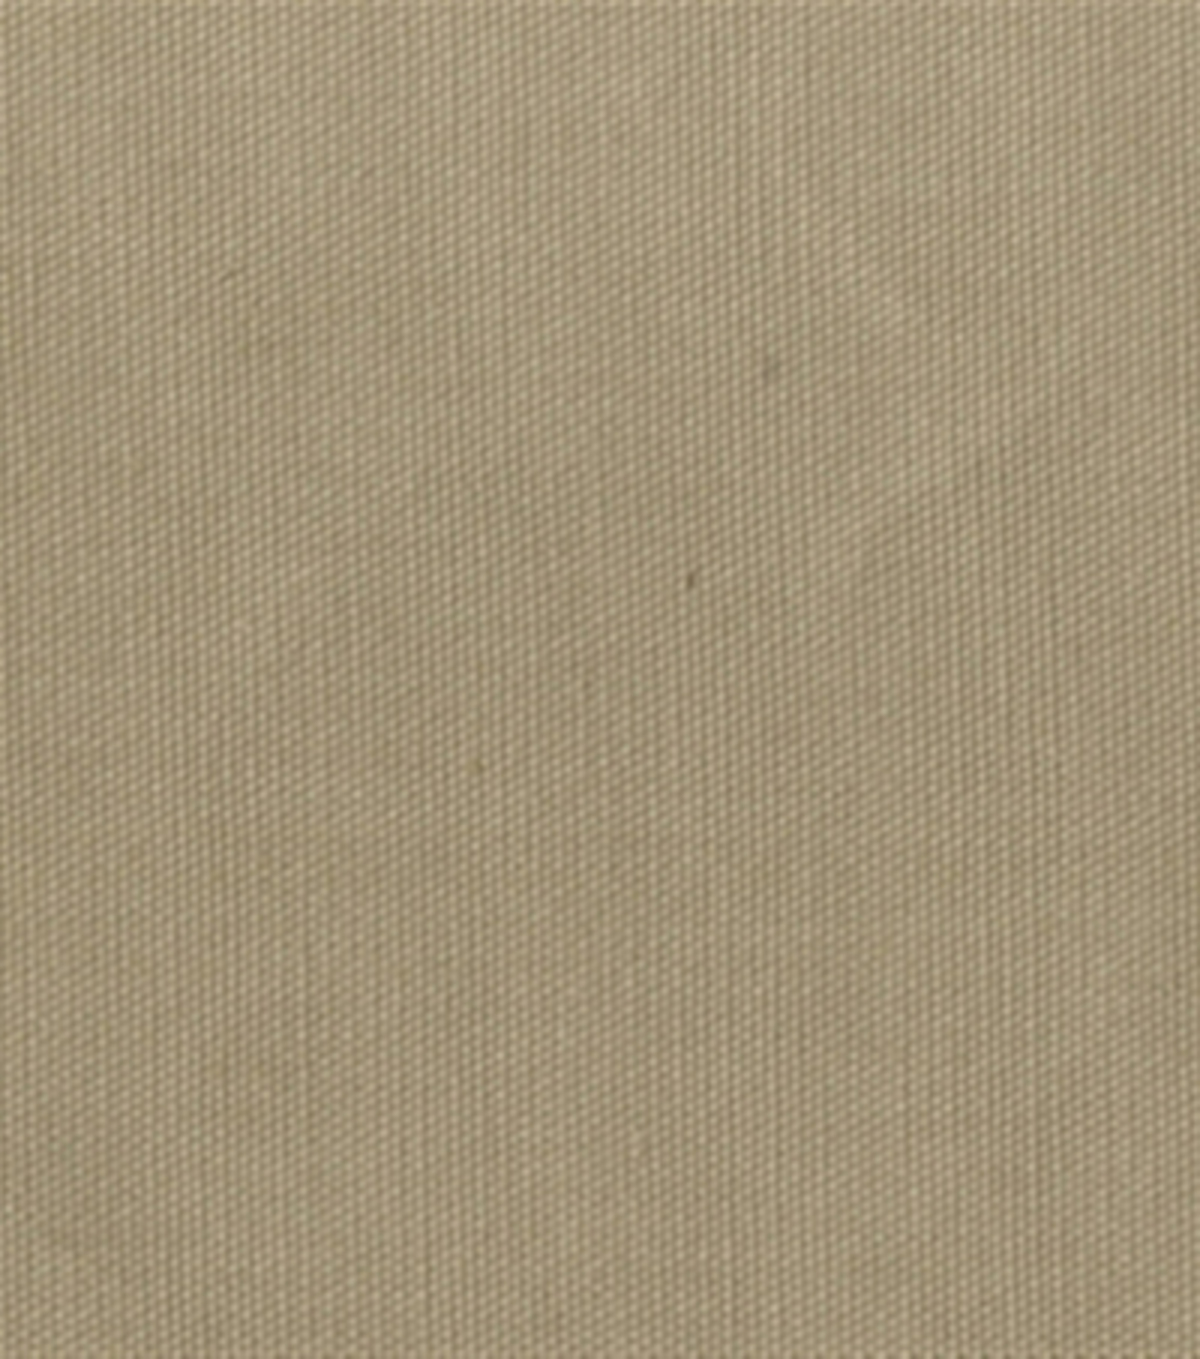 Home Decor 8\u0022x8\u0022 Fabric Swatch-Covington Spinnaker 196 Linen